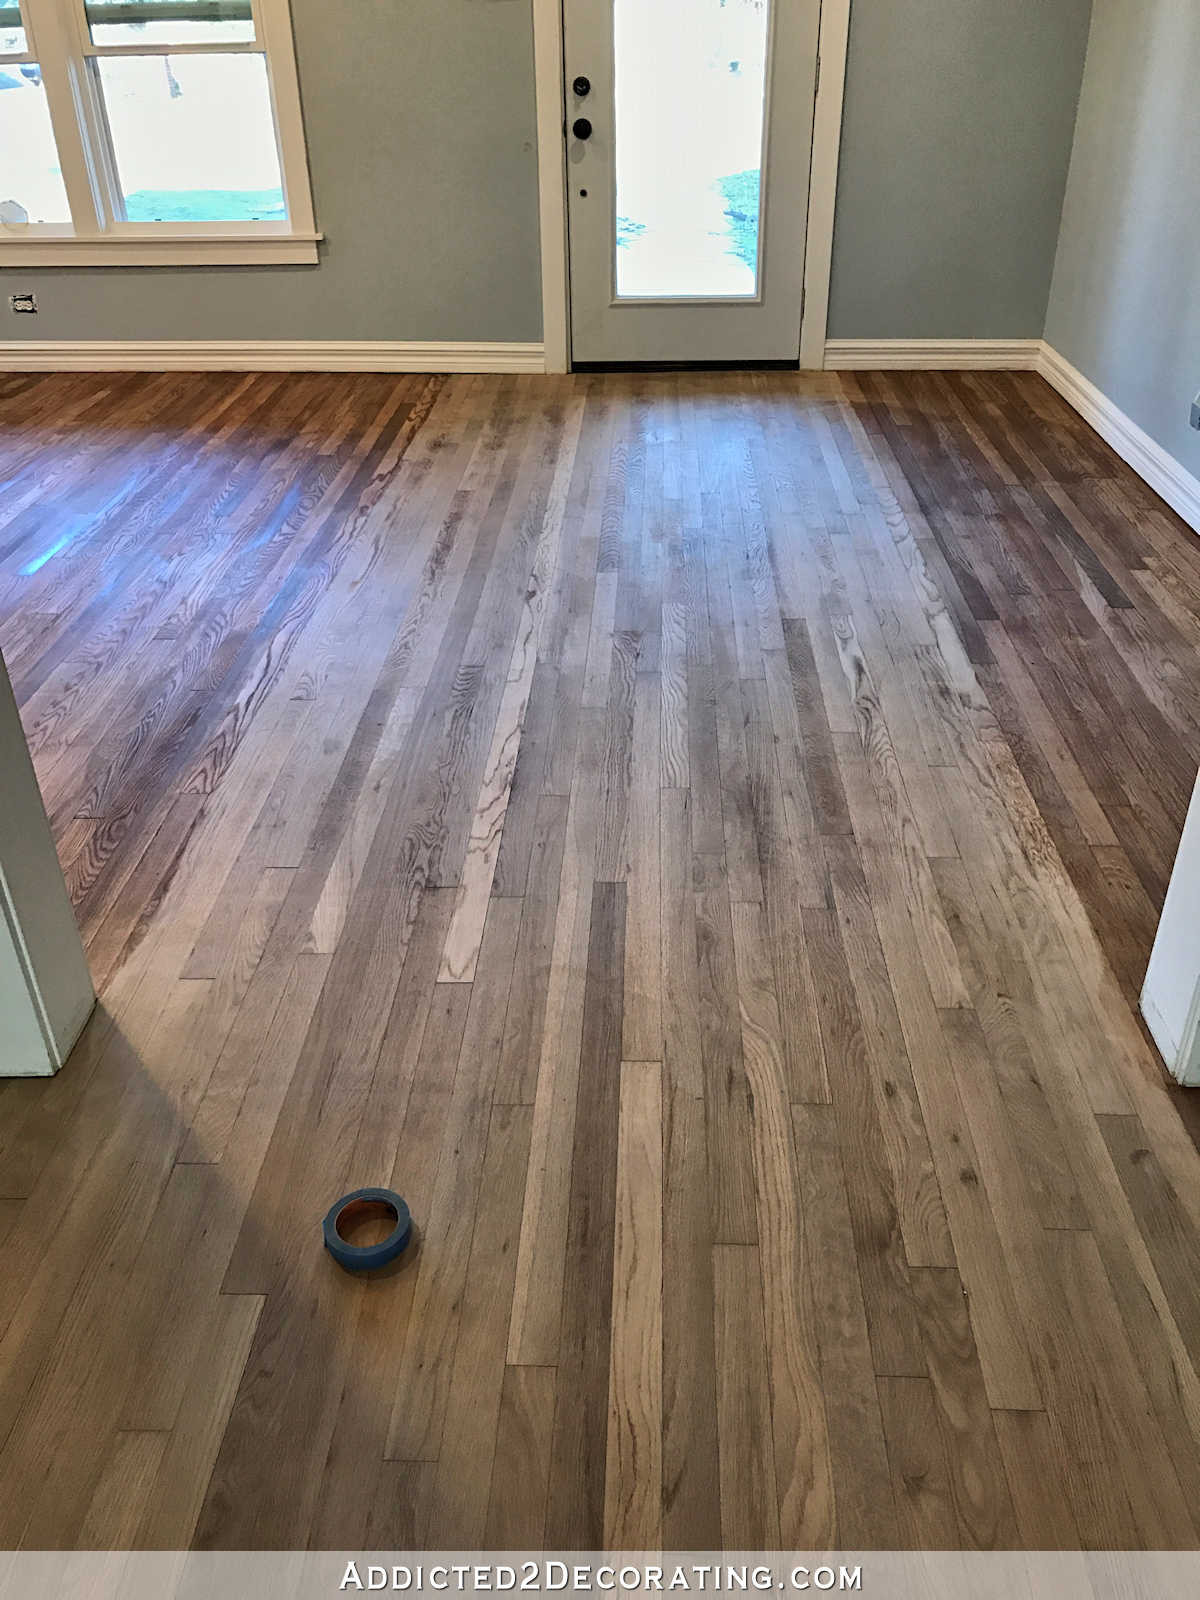 hardwood flooring perth of how to refinish a wood floor sand and stain hardwood floors cost intended for how to refinish a wood floor hardwood floor design floor refinishing cost rustic hardwood